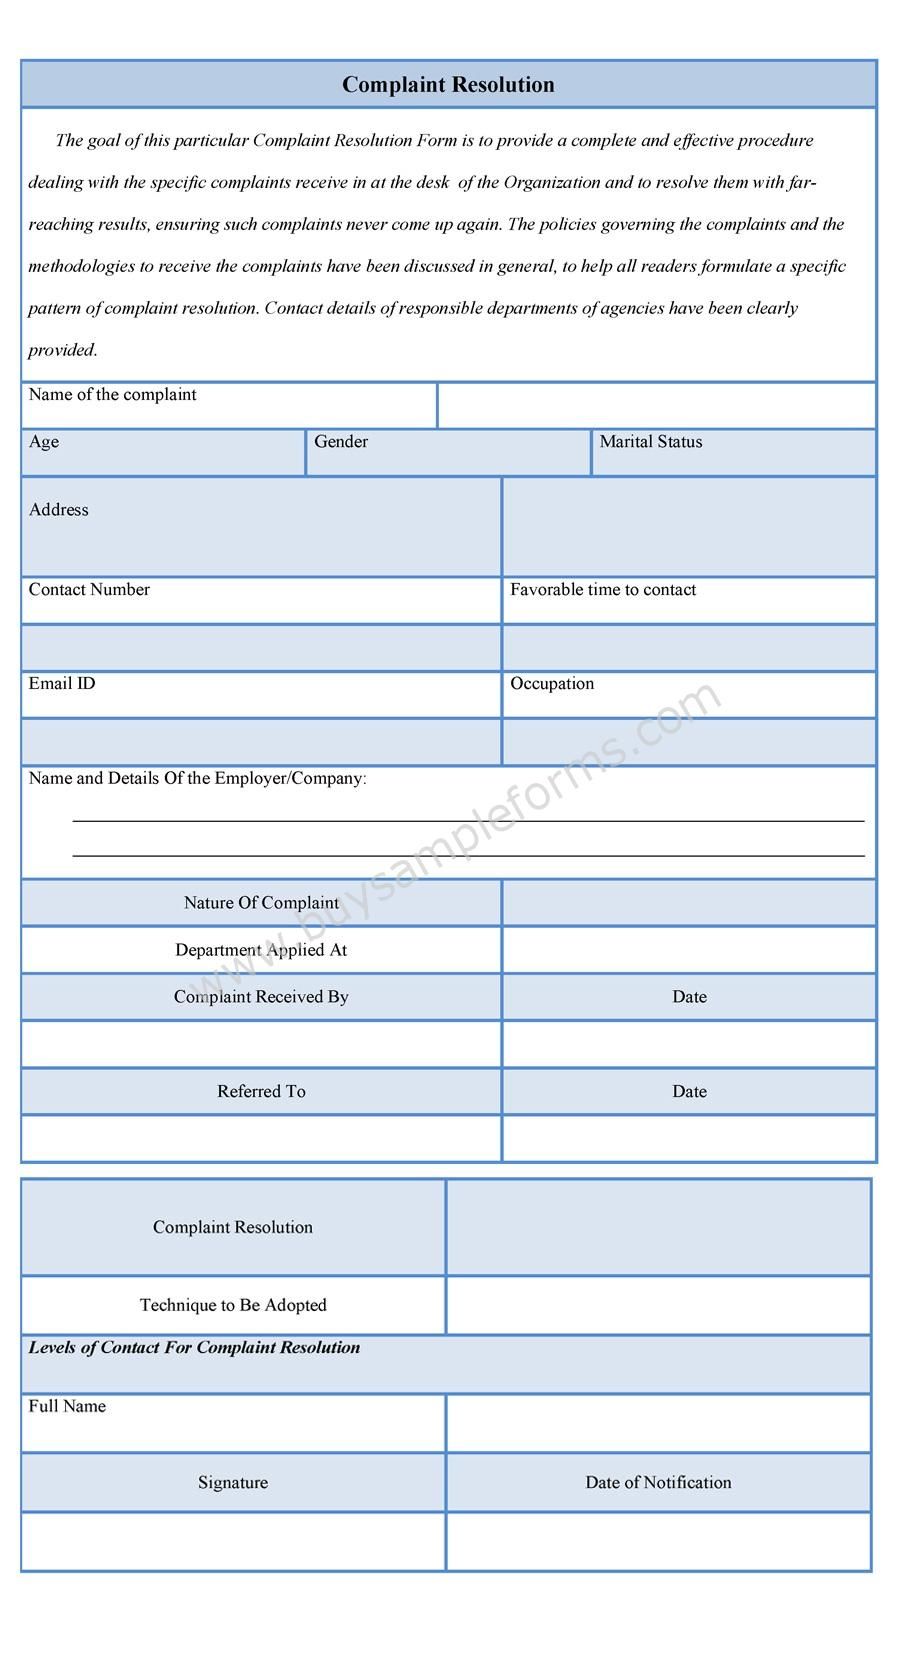 Download Easy To Edit Complaint Resolution Form At Only $3.00  Customer Complaints Form Template